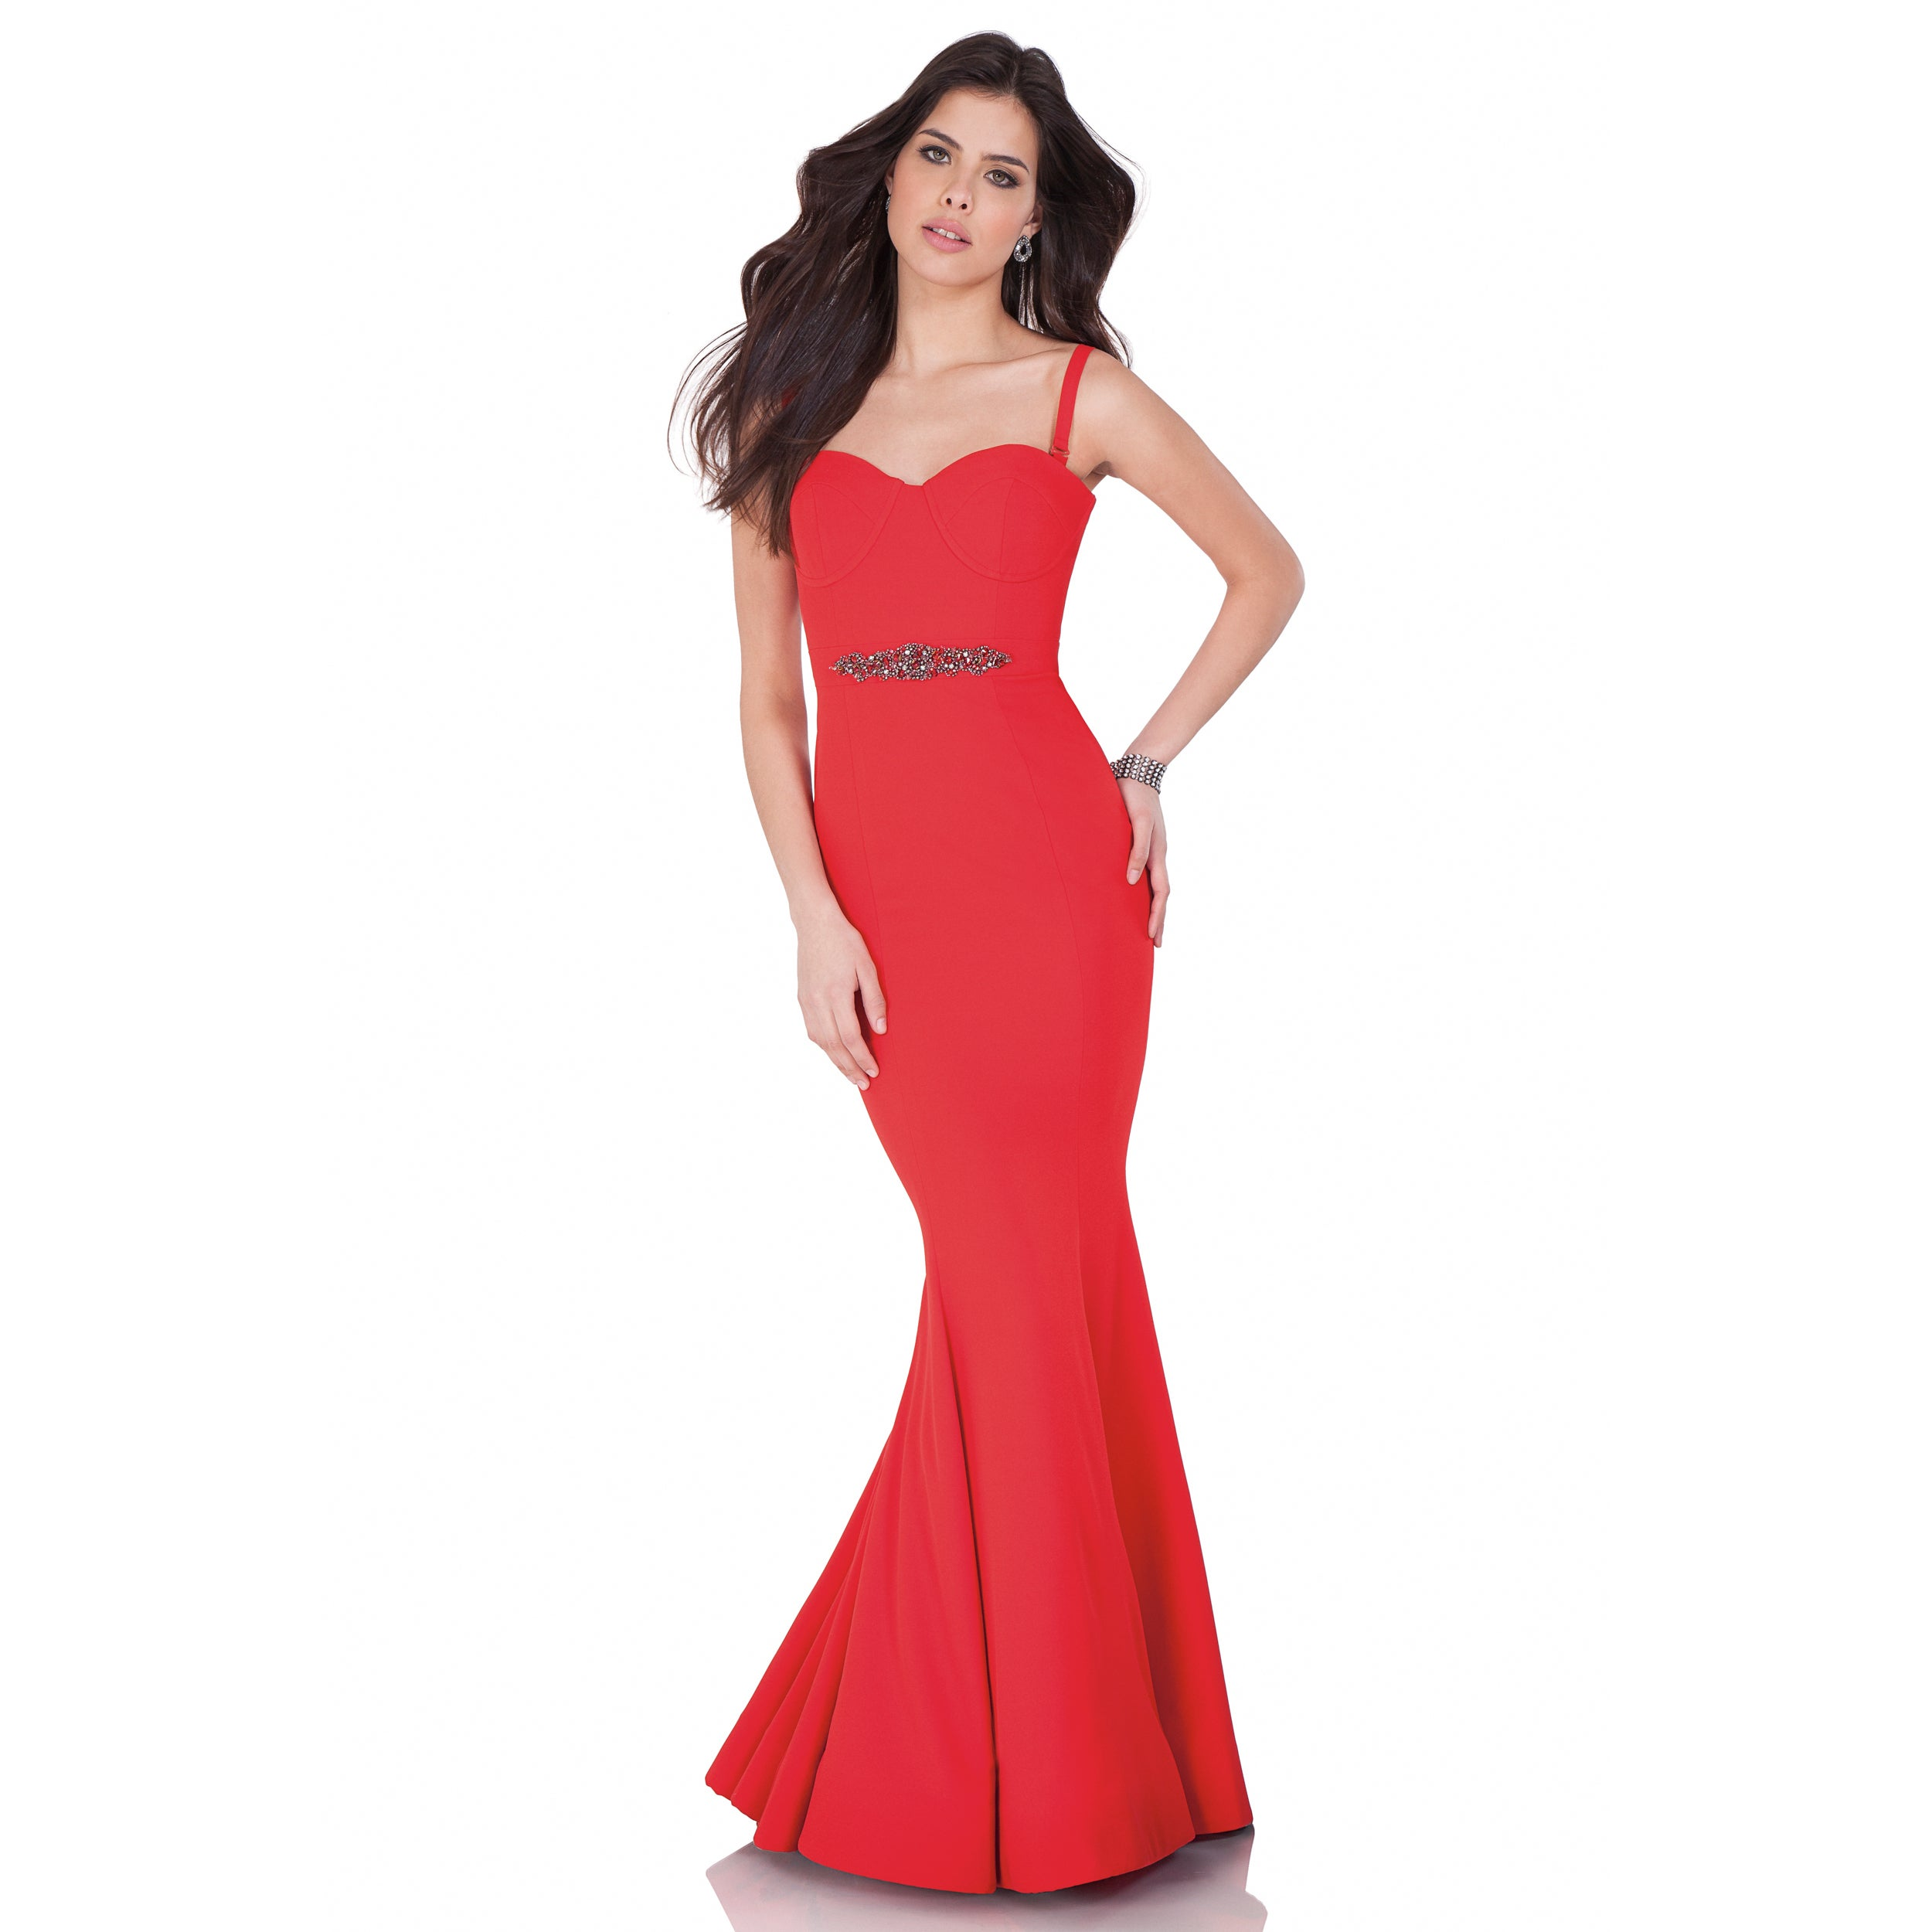 f60dde28004 Shop Terani Couture Red Long Trumpet Evening Gown with Beaded Accent - Free  Shipping Today - Overstock - 15033639